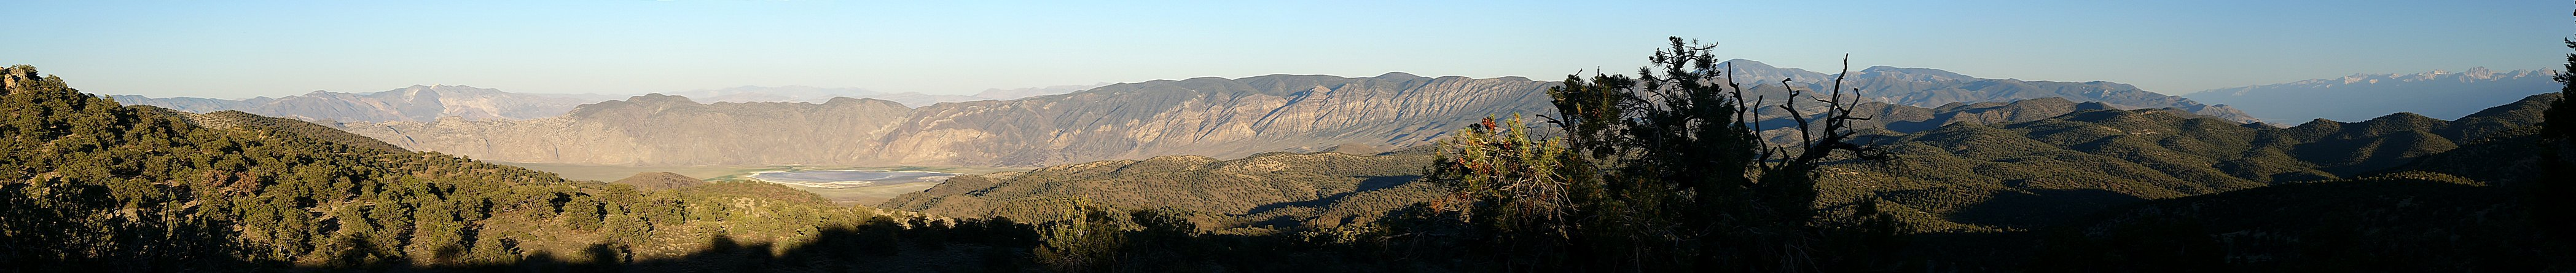 The eastern edge of the Great Basin --- from right to left,  the Sierra, Inyo, and White mountain ranges